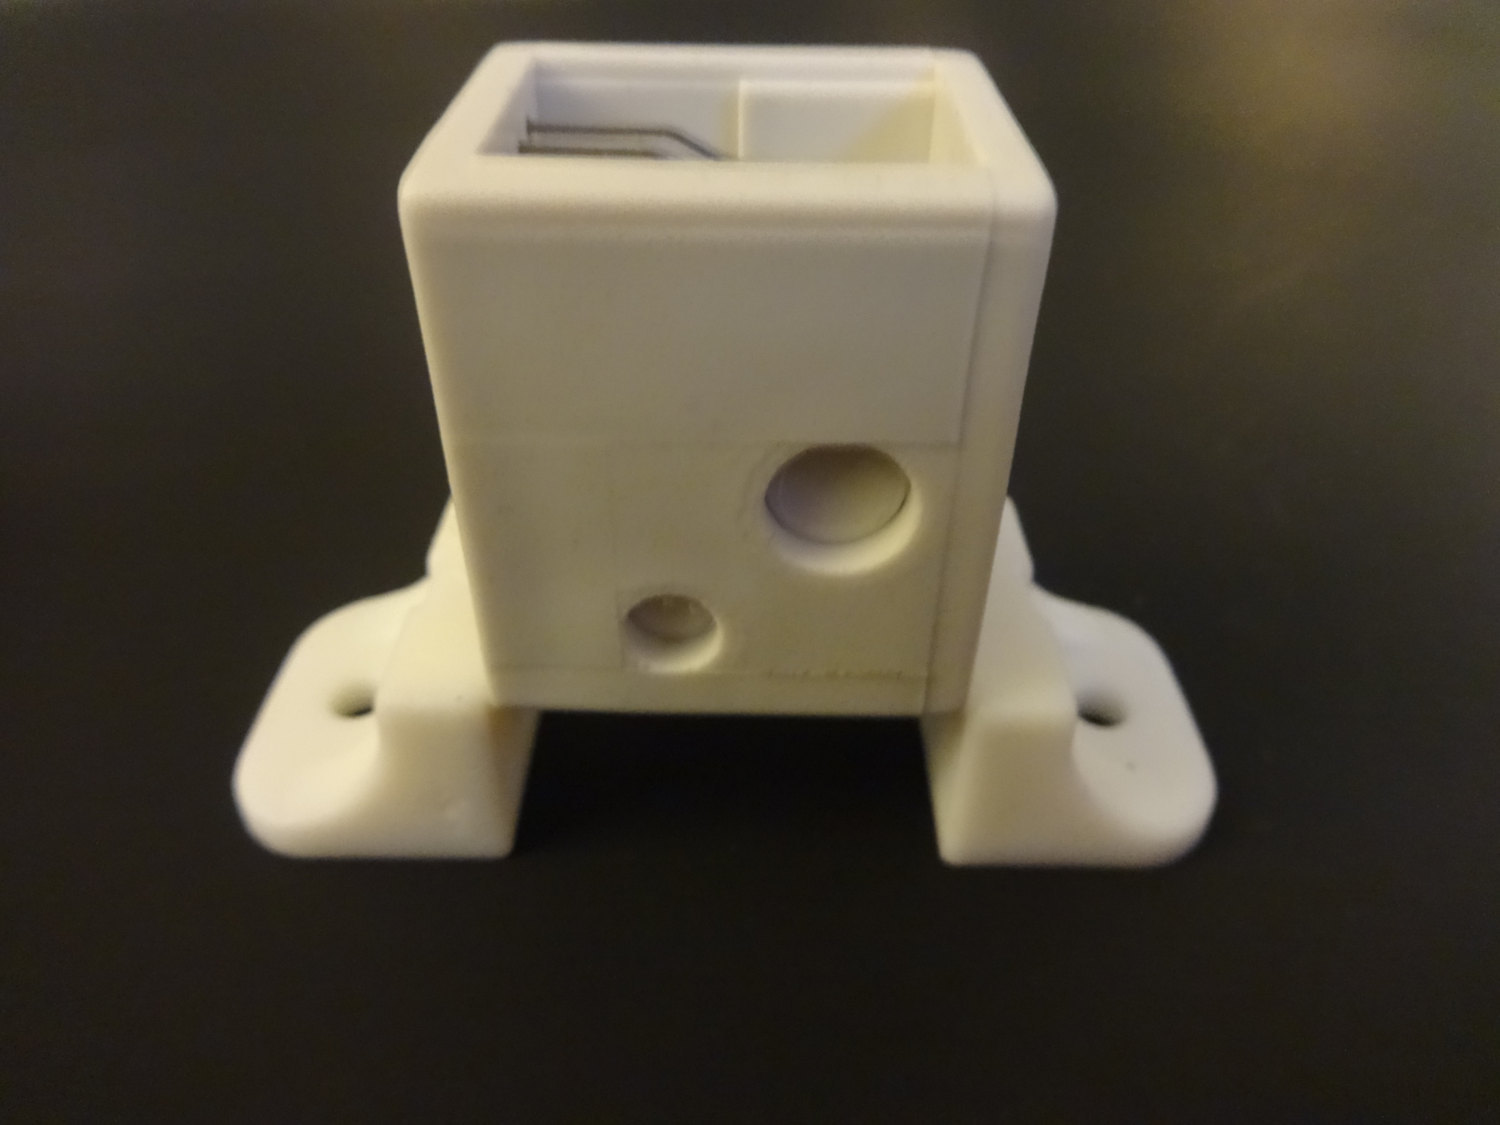 LARGE Box Style ROMAN SHADE Cord Lock: For up to 10 cords, in White